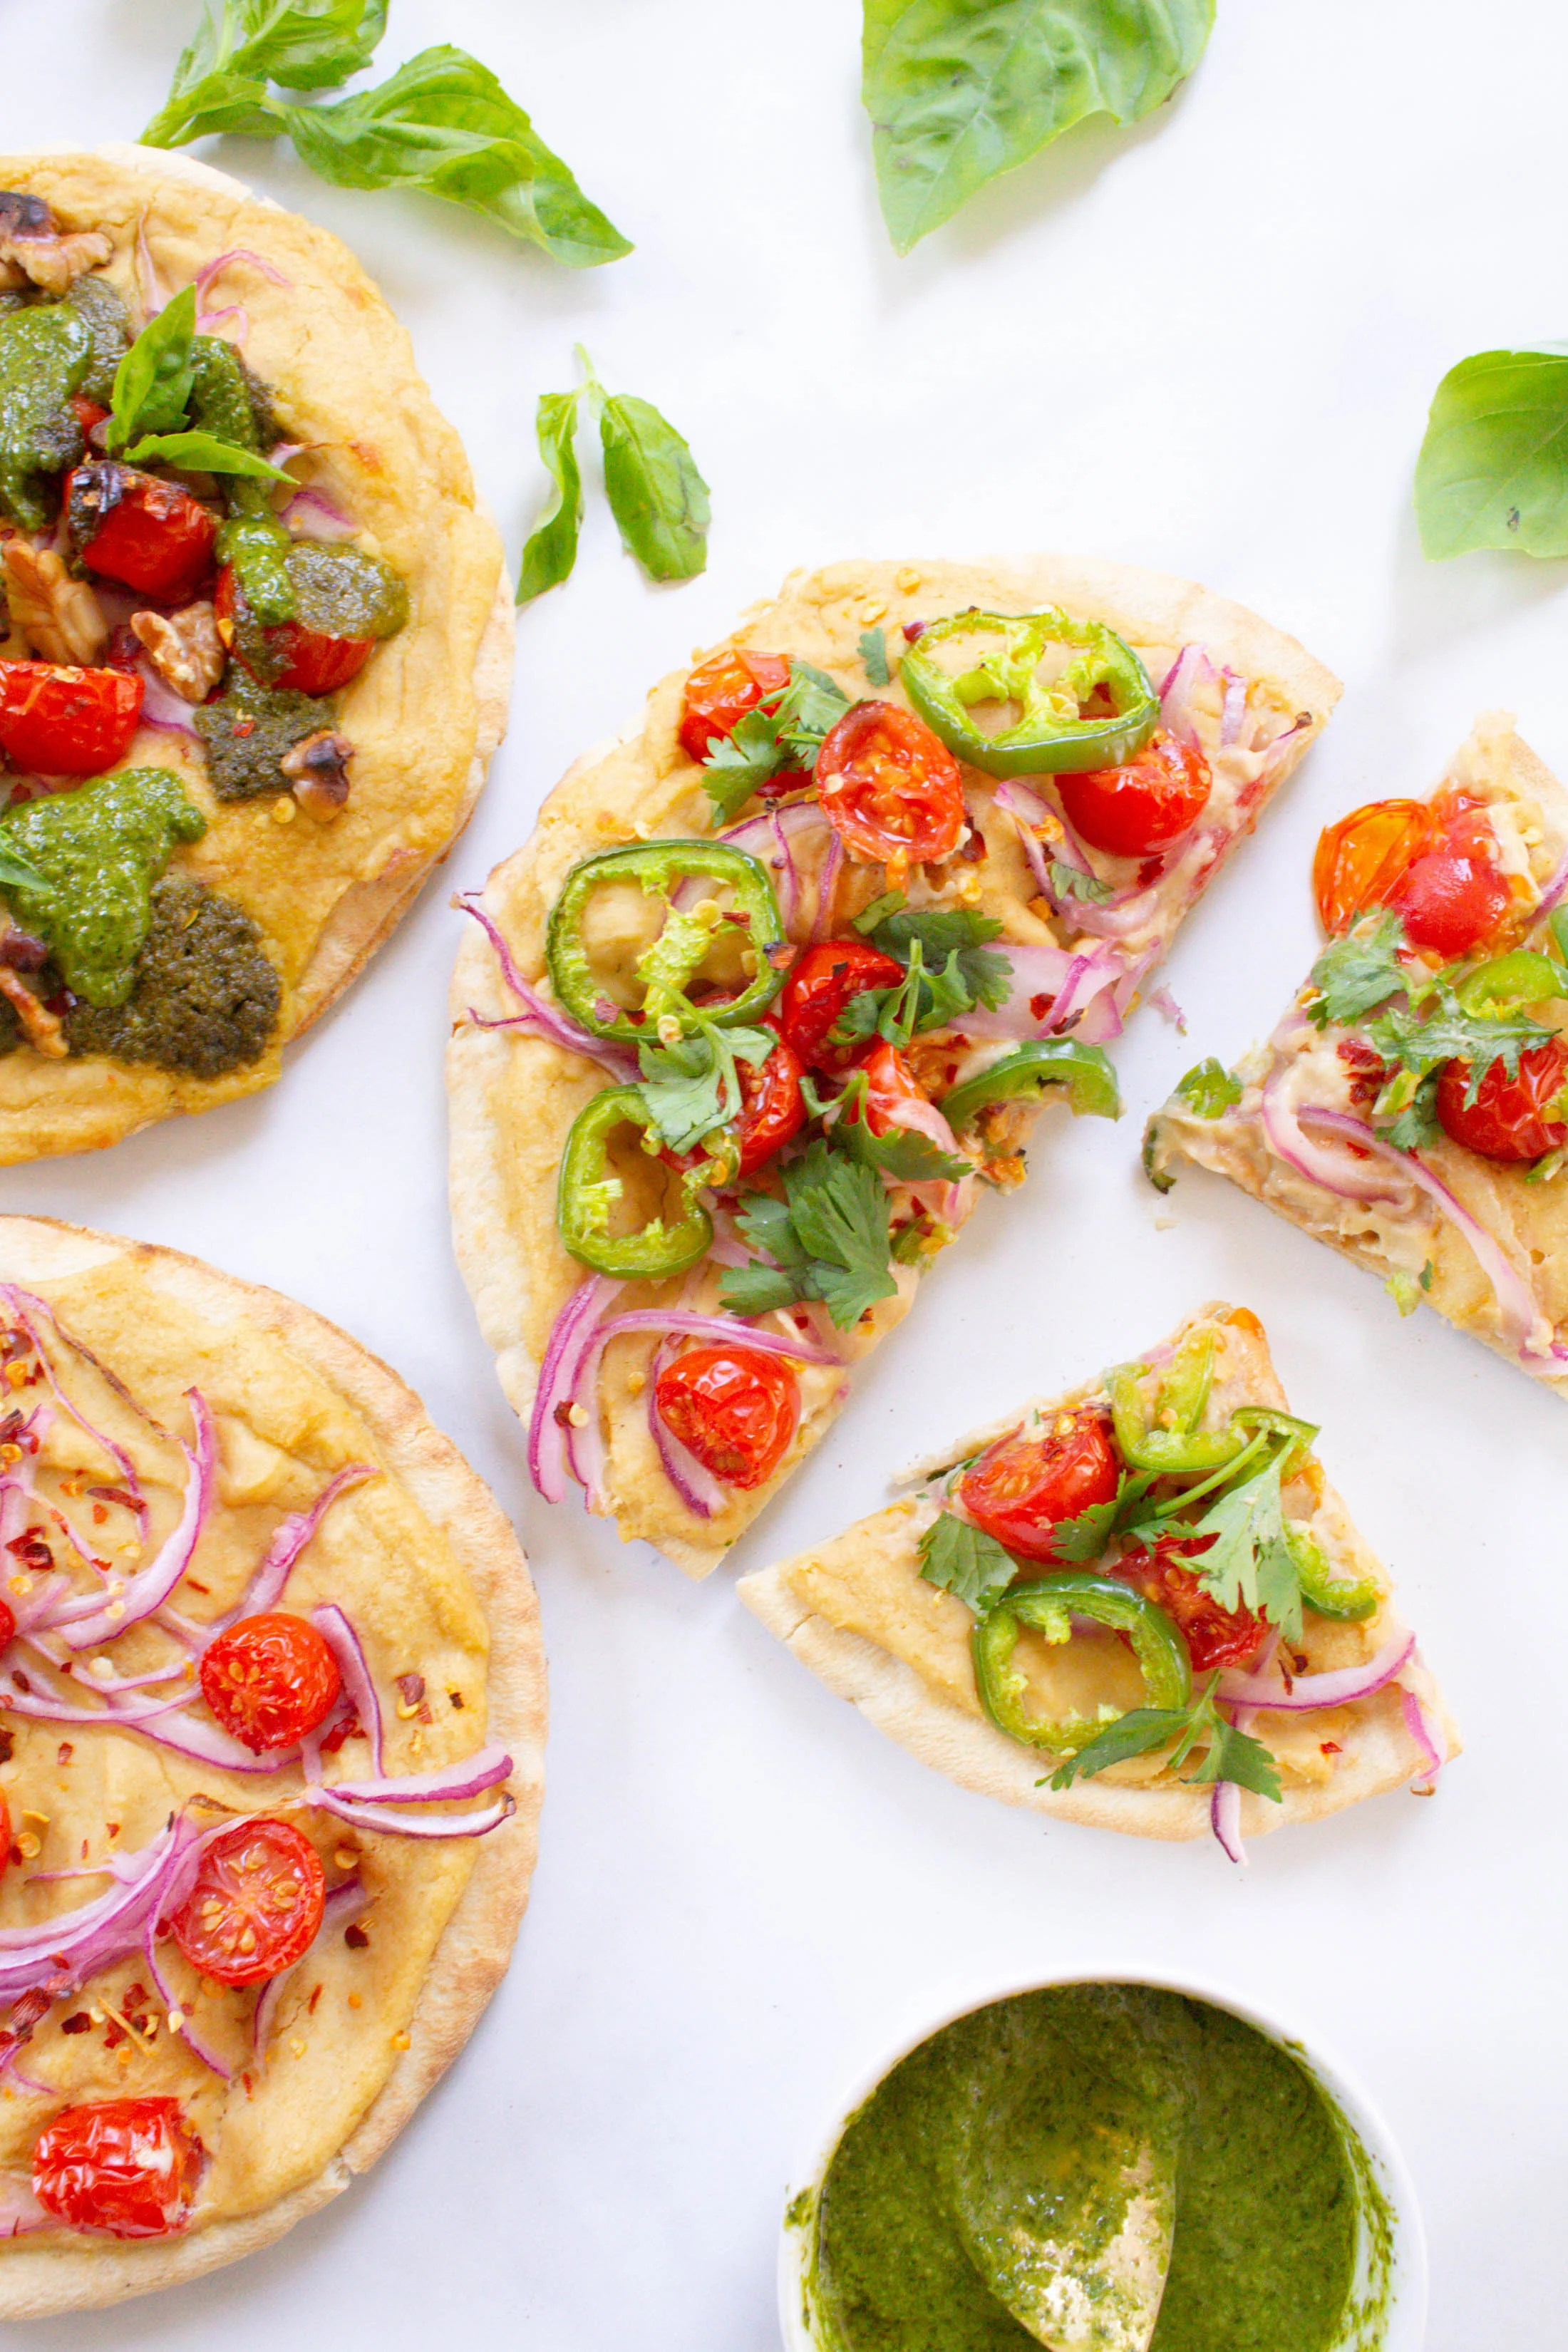 Hummus Pita Pizzas 3 Ways This Savory Vegan